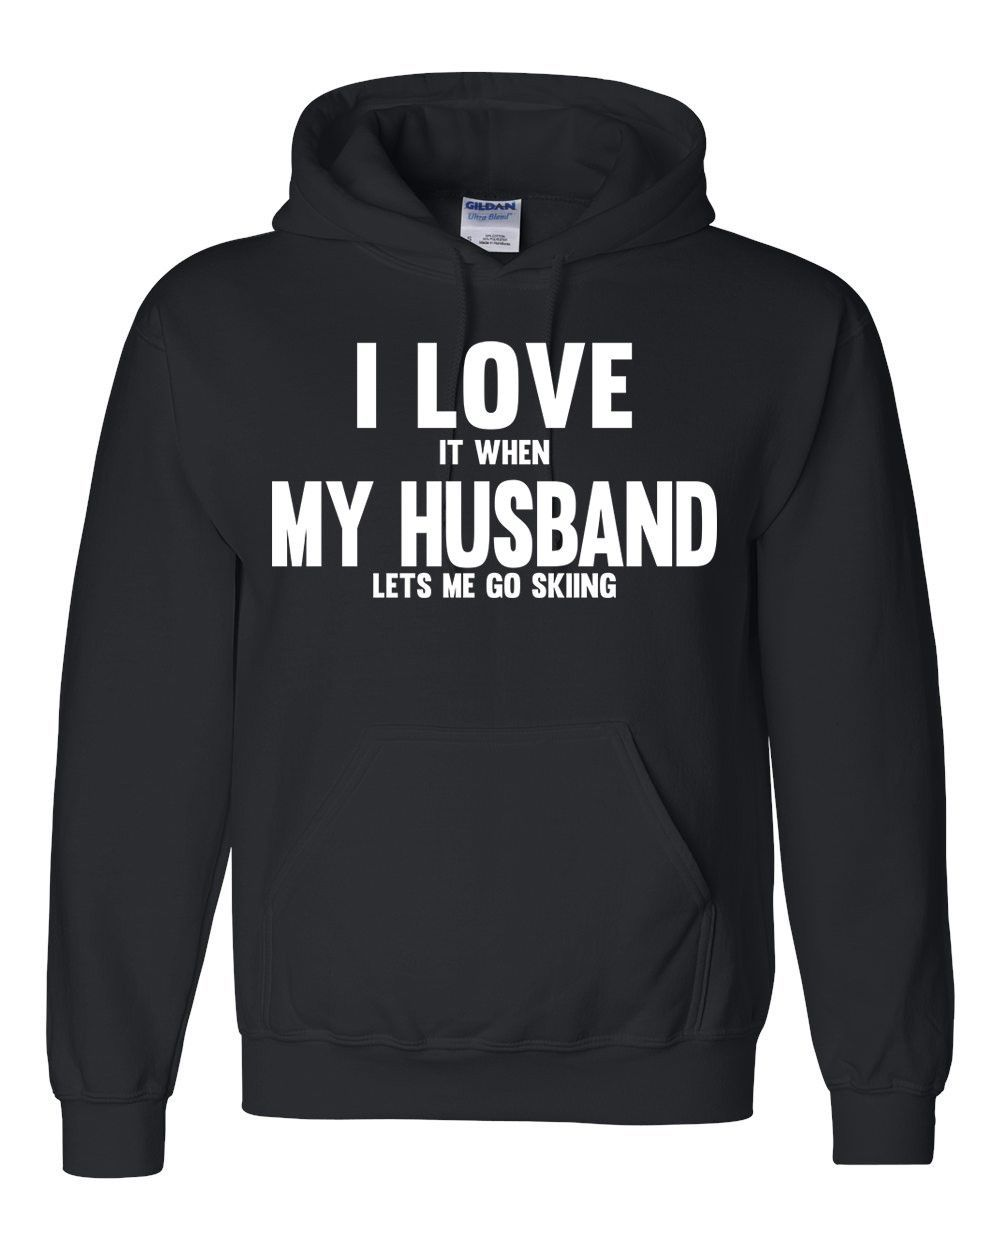 6182b019 I love it when my husband lets me go skiing Hoodie | Hoodies ...